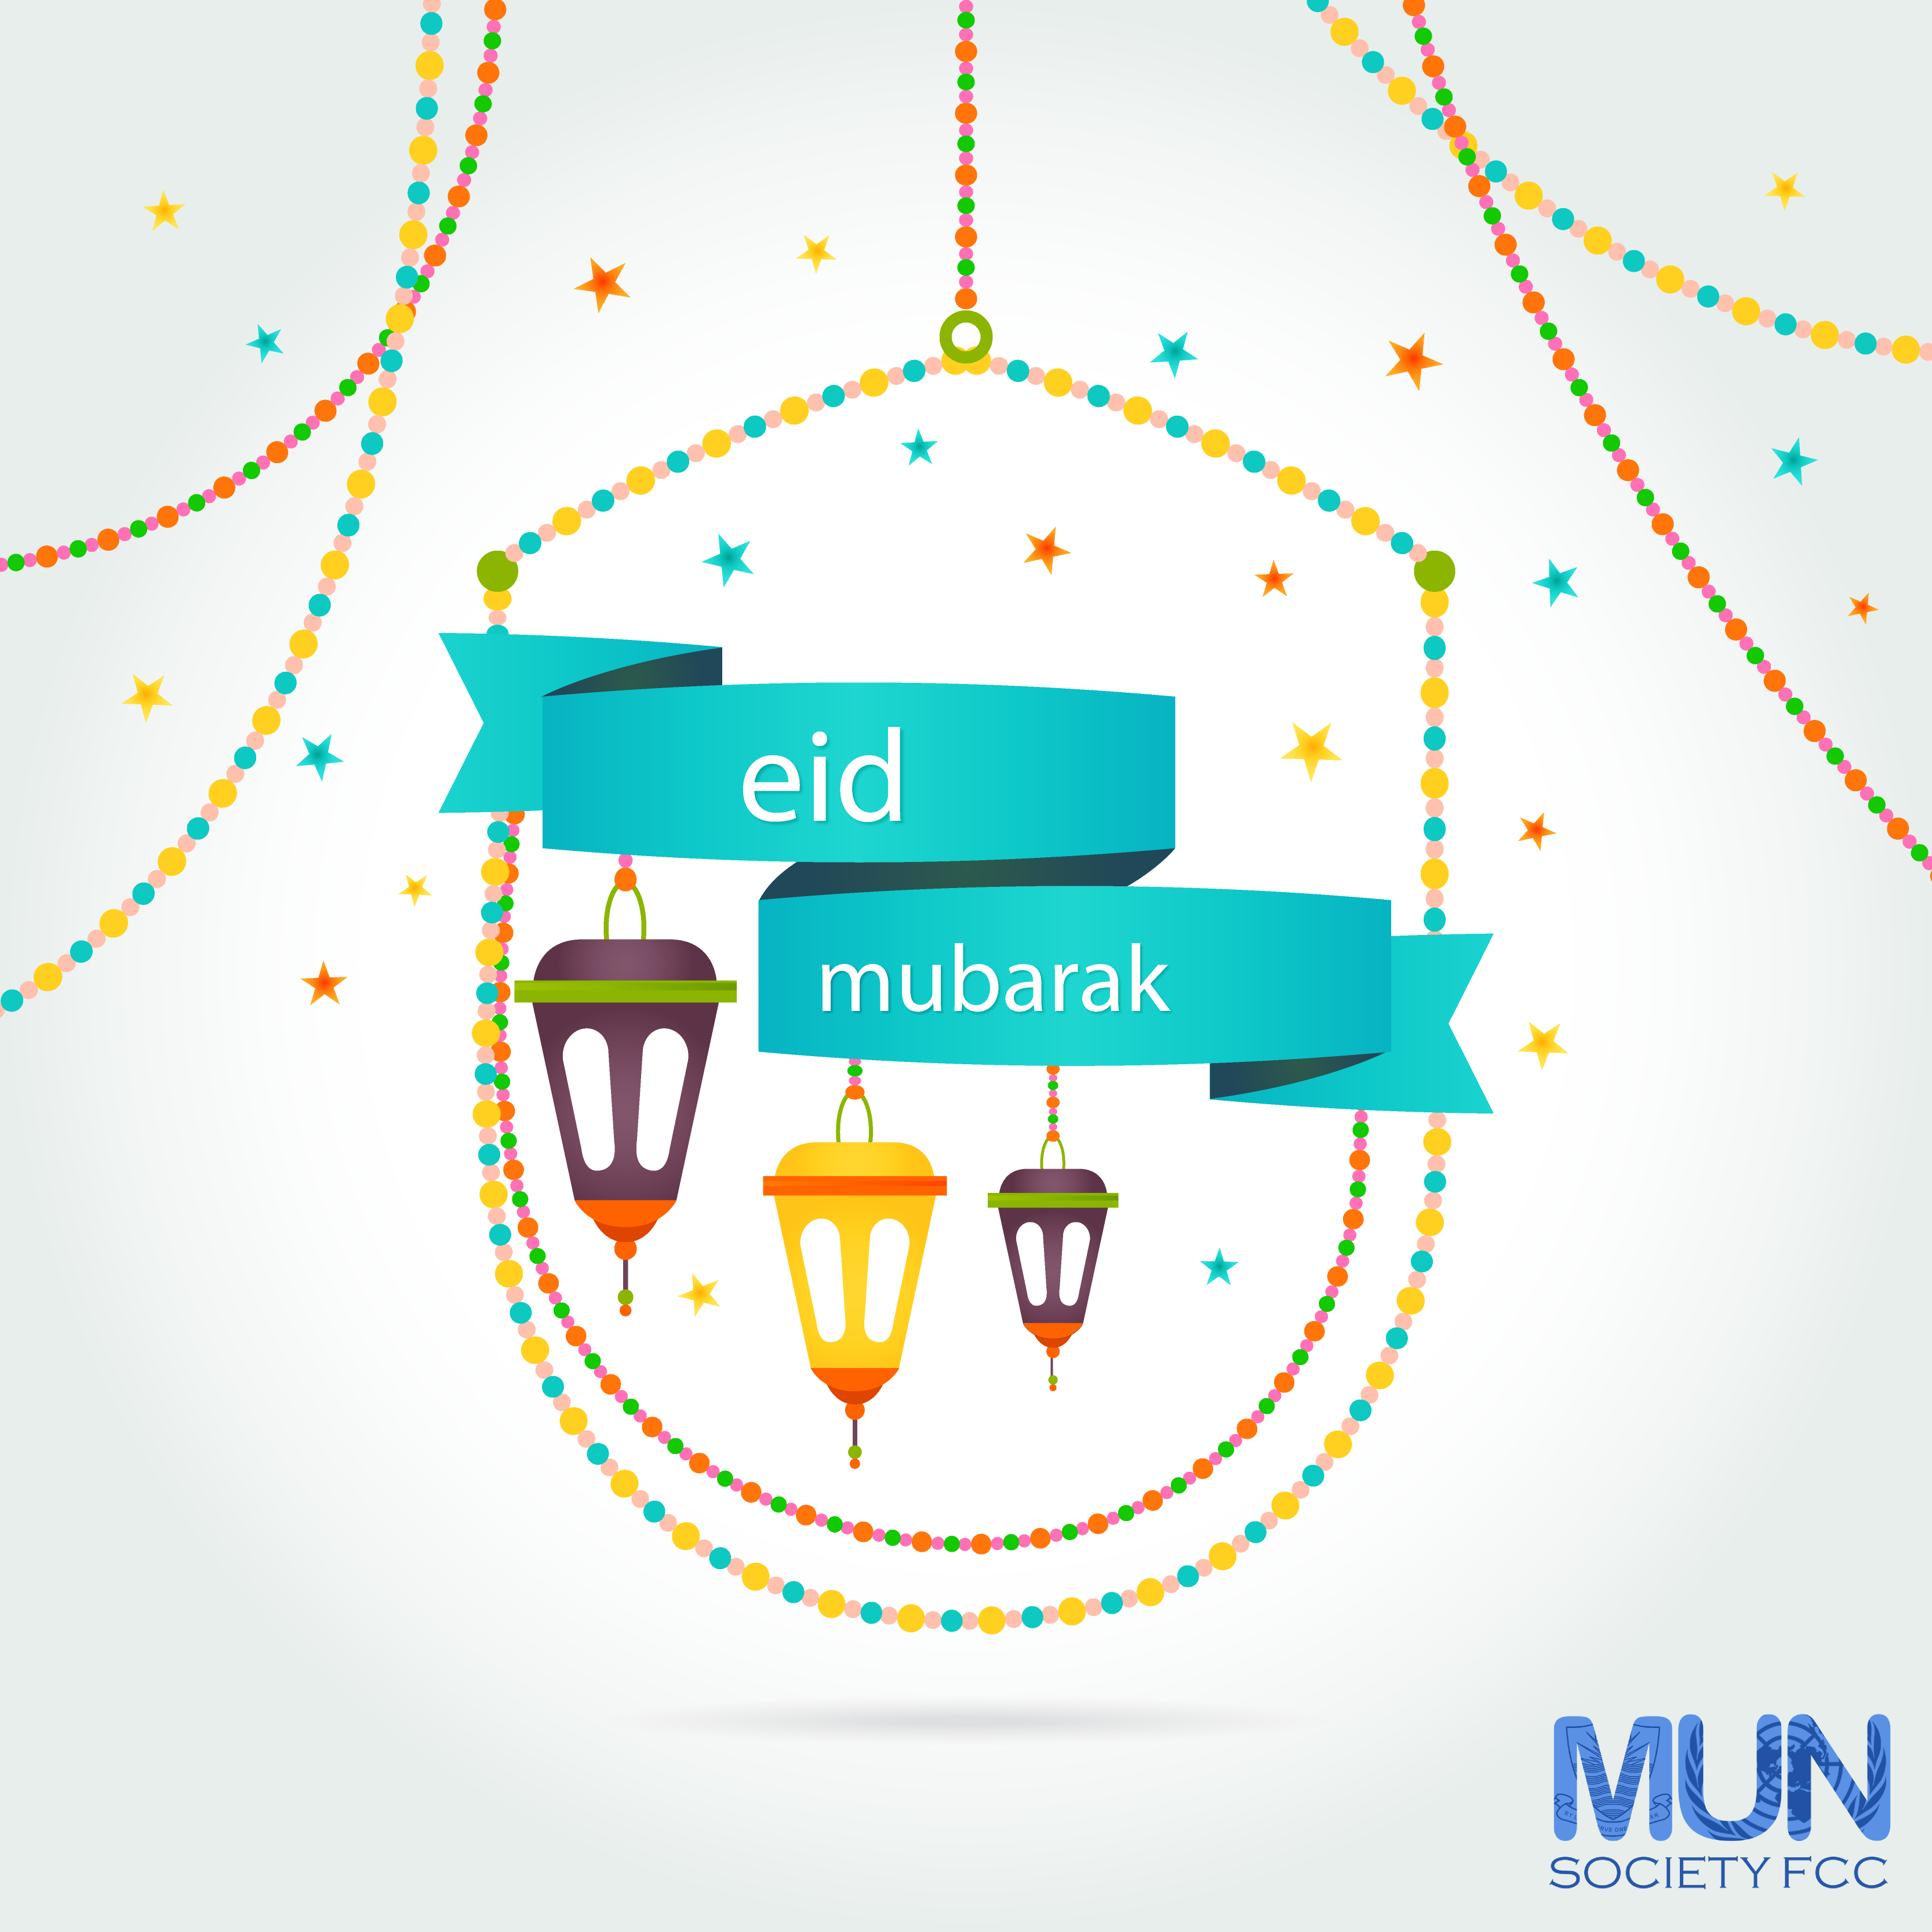 A very happy EID to you and your loved ones.